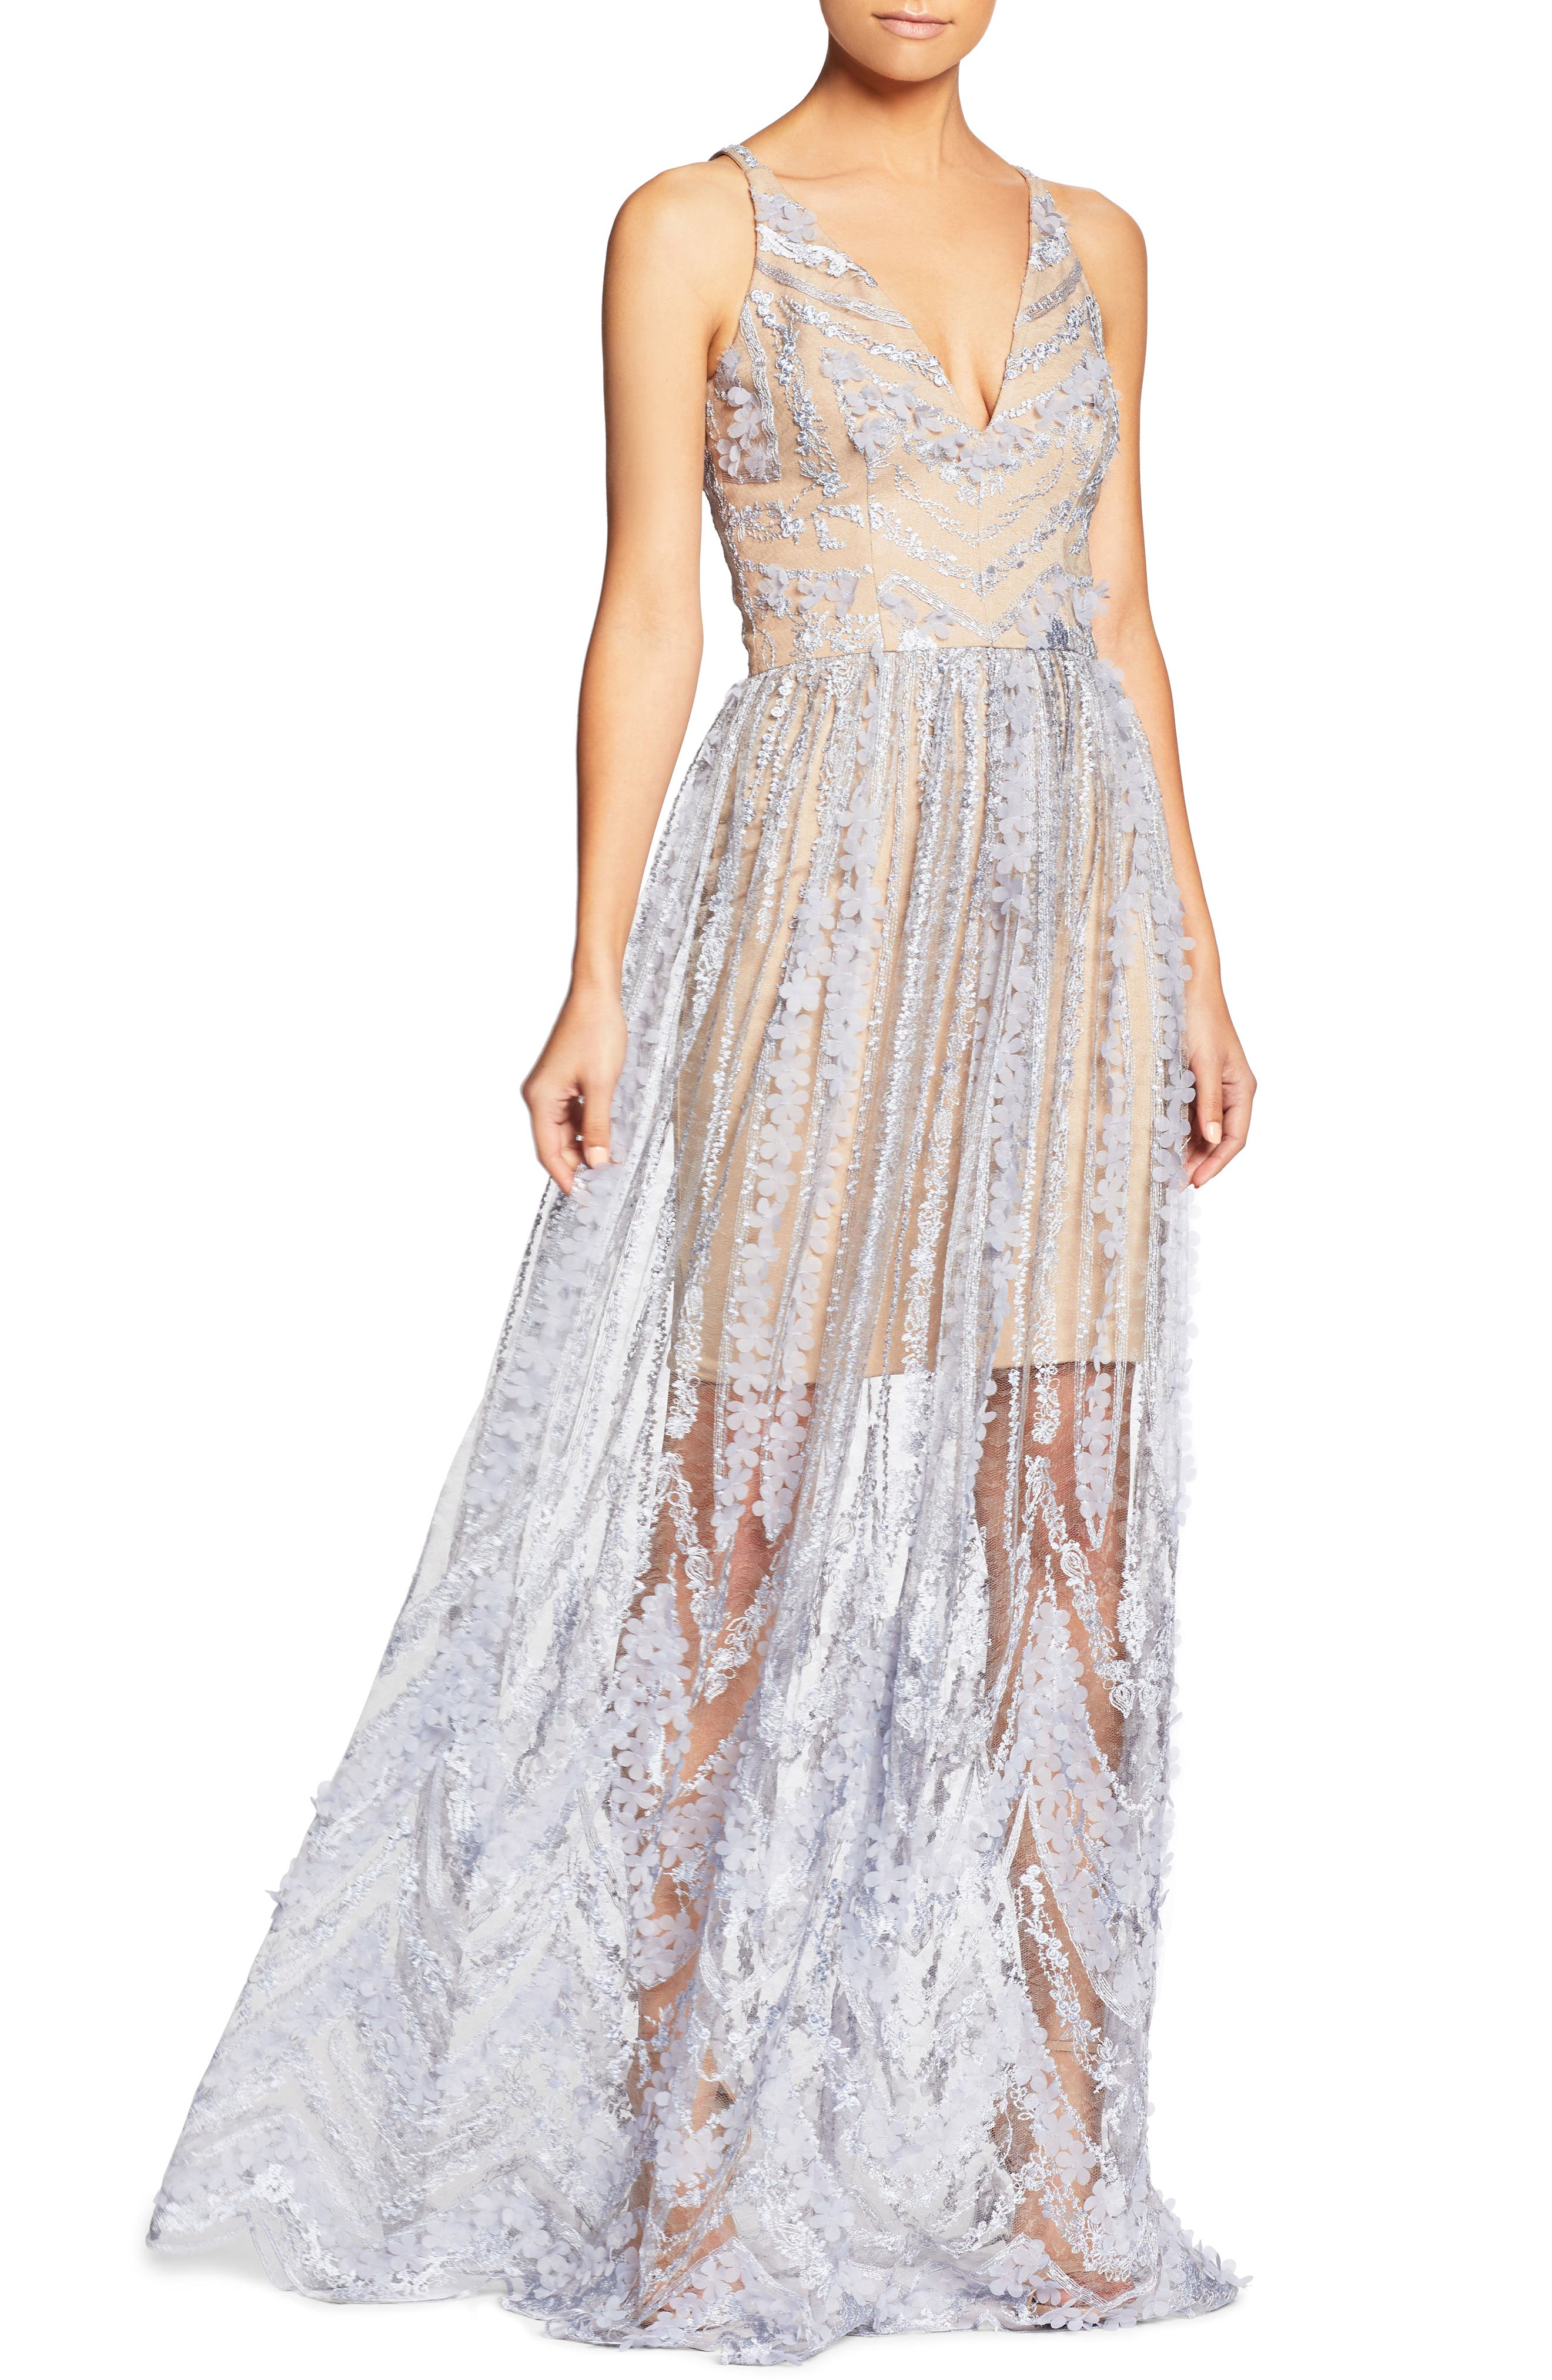 Chelsea Lace A-Line Gown,                             Main thumbnail 1, color,                             Mineral Blue/ Nude